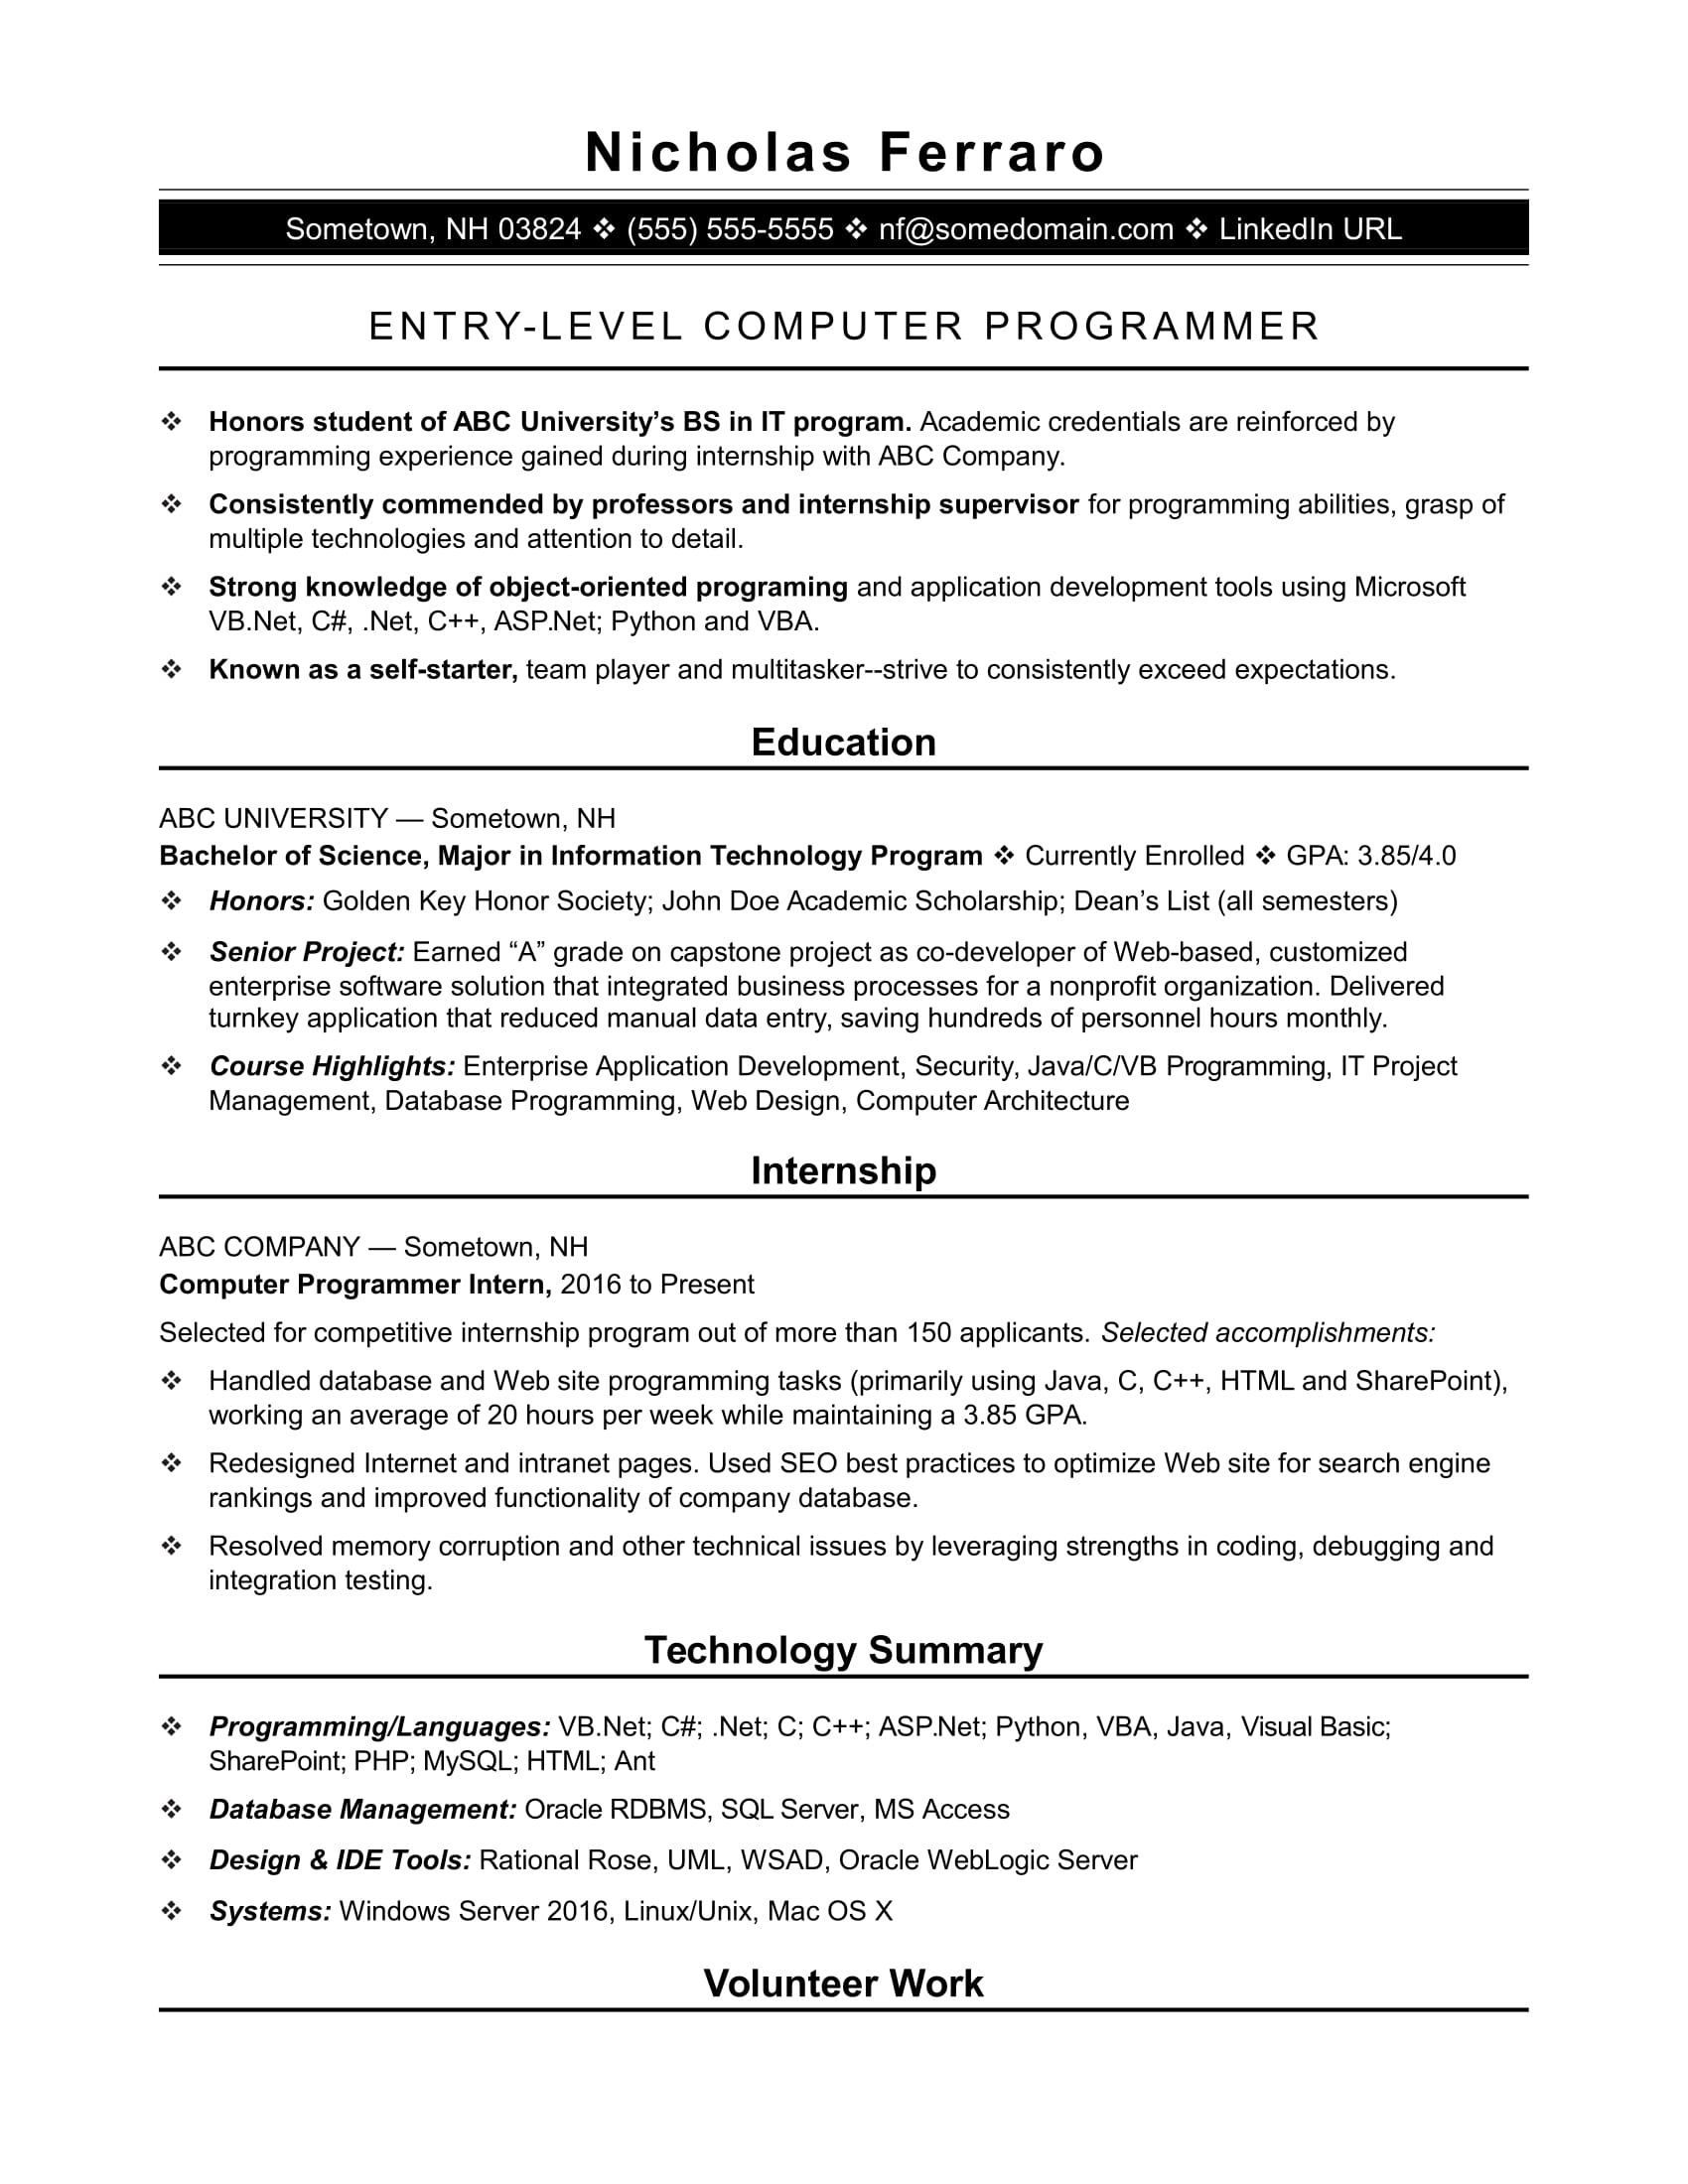 sample resume for an entry level computer programmer - Sample Resume Entry Level Software Engineer